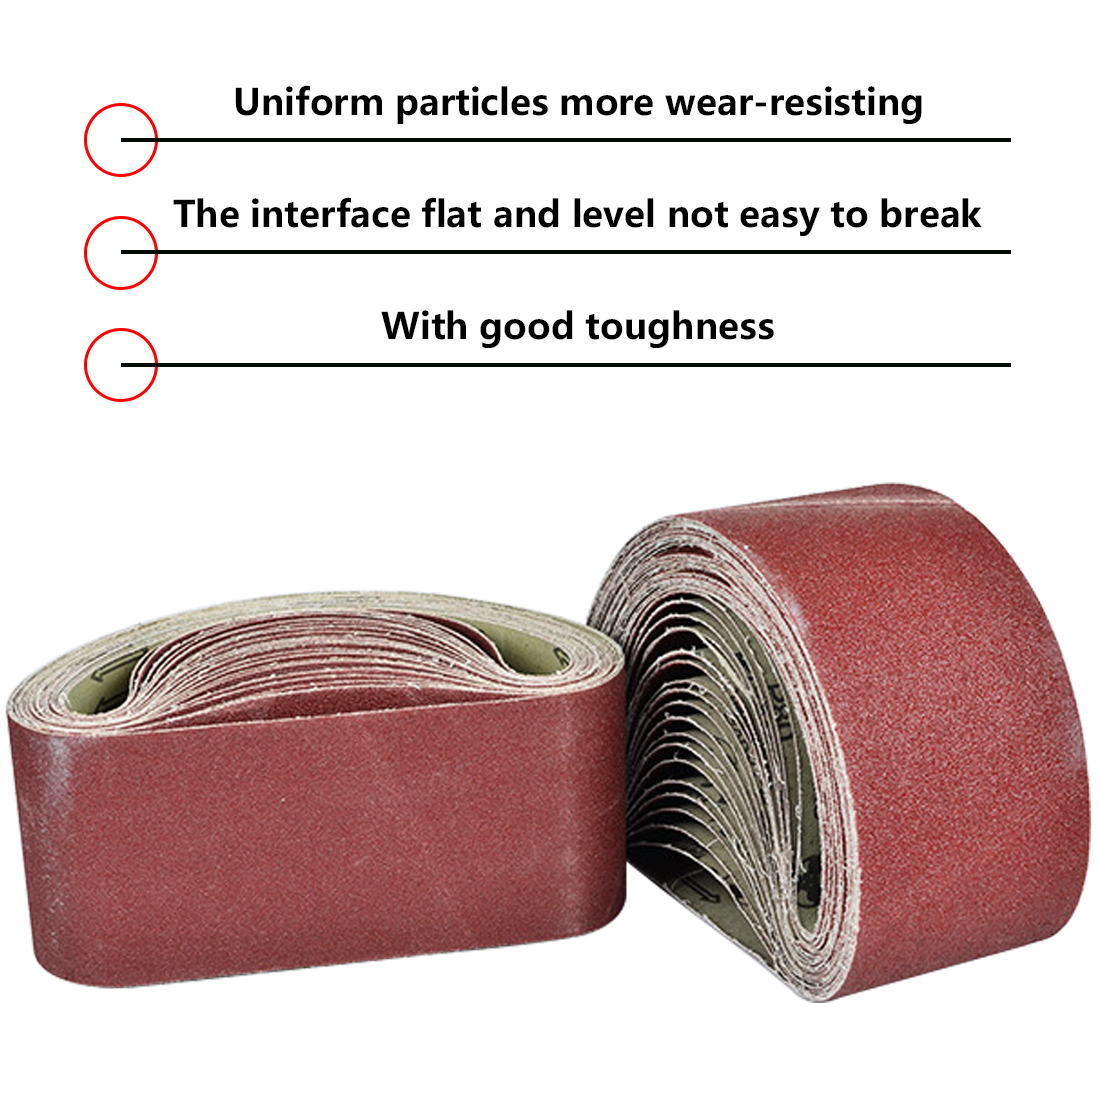 Tools Audacious 533x75mm Sanding Belts 80-320 Grits Sandpaper Abrasive Bands For Sander Power Rotary Tools Dremel Accessories Abrasive Tool Non-Ironing